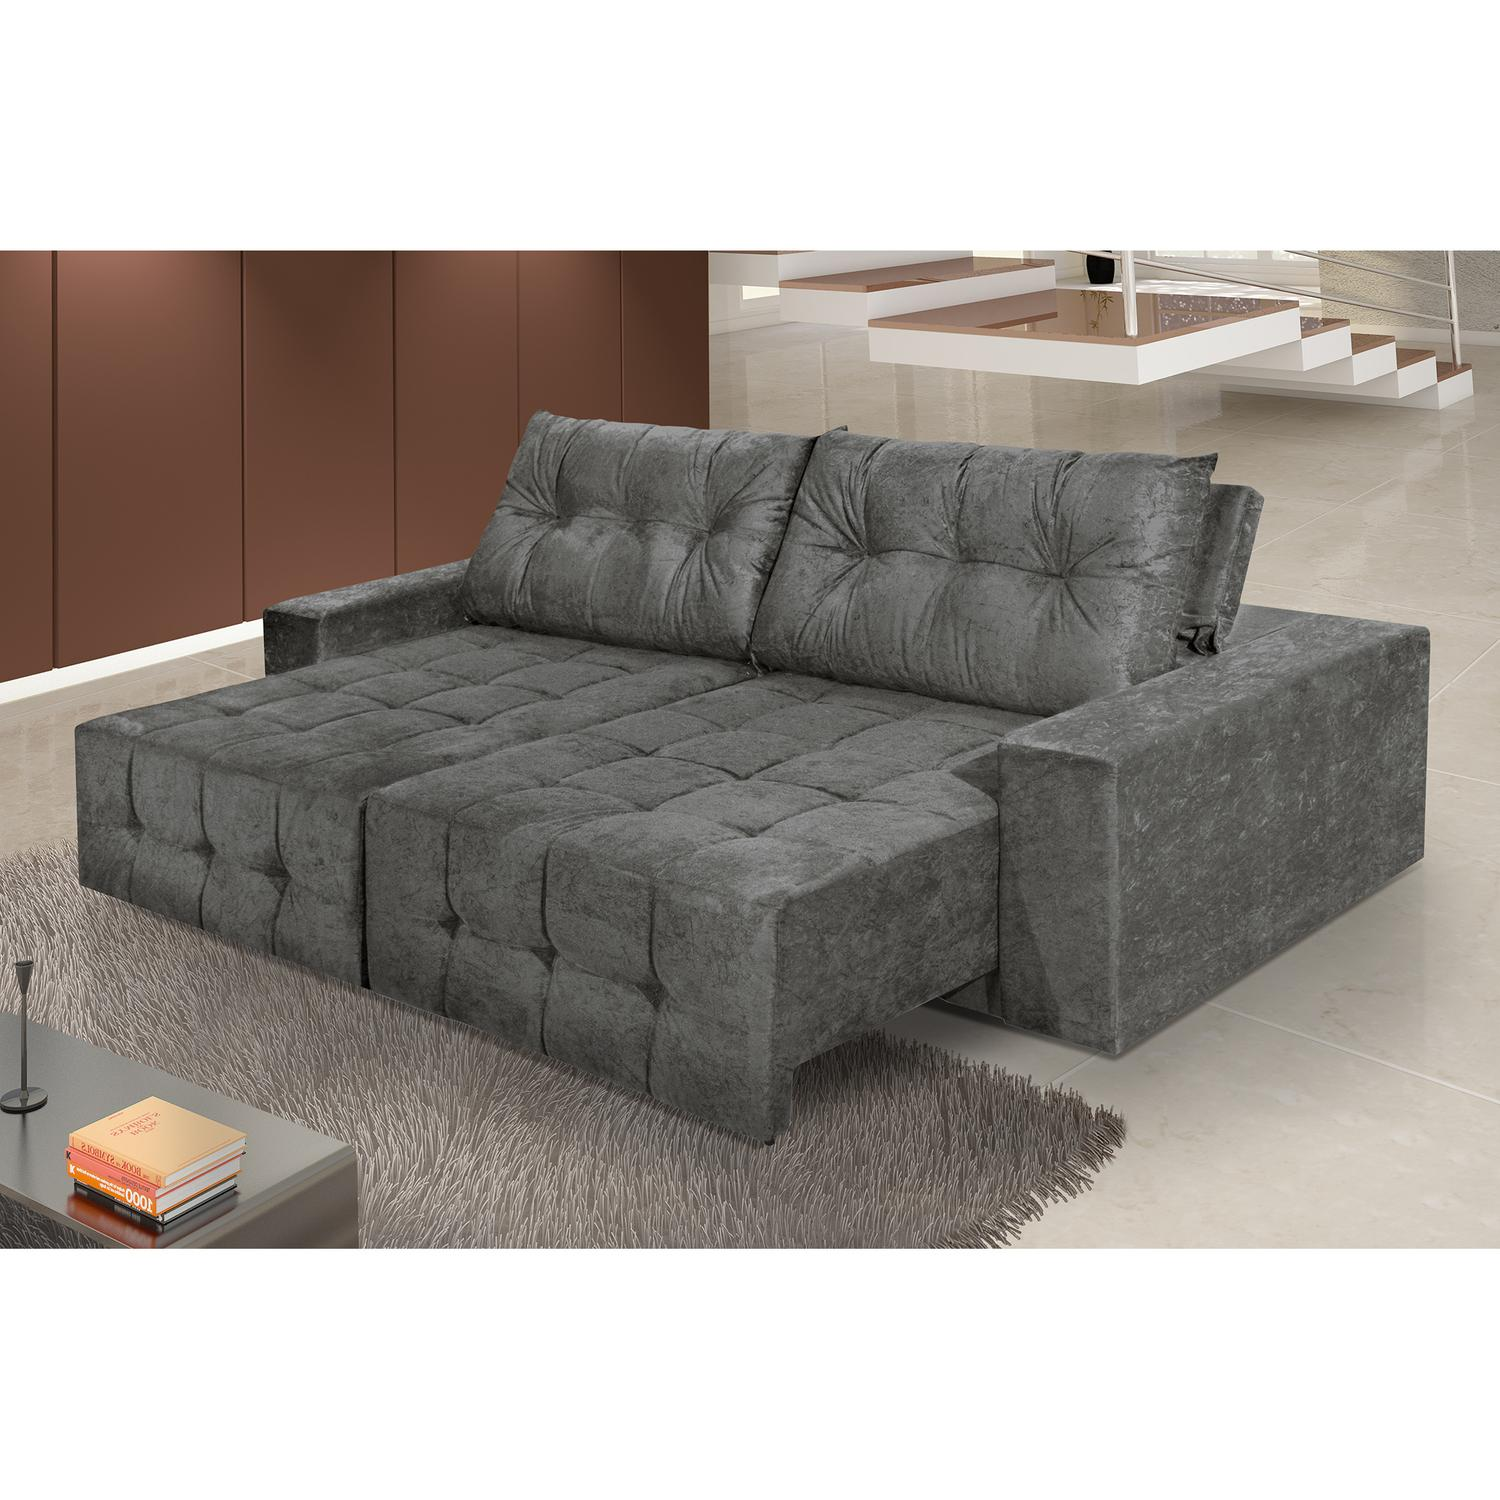 Sofa reclinavel e retratil 4 lugares for Sofa 03 lugares retratil e reclinavel